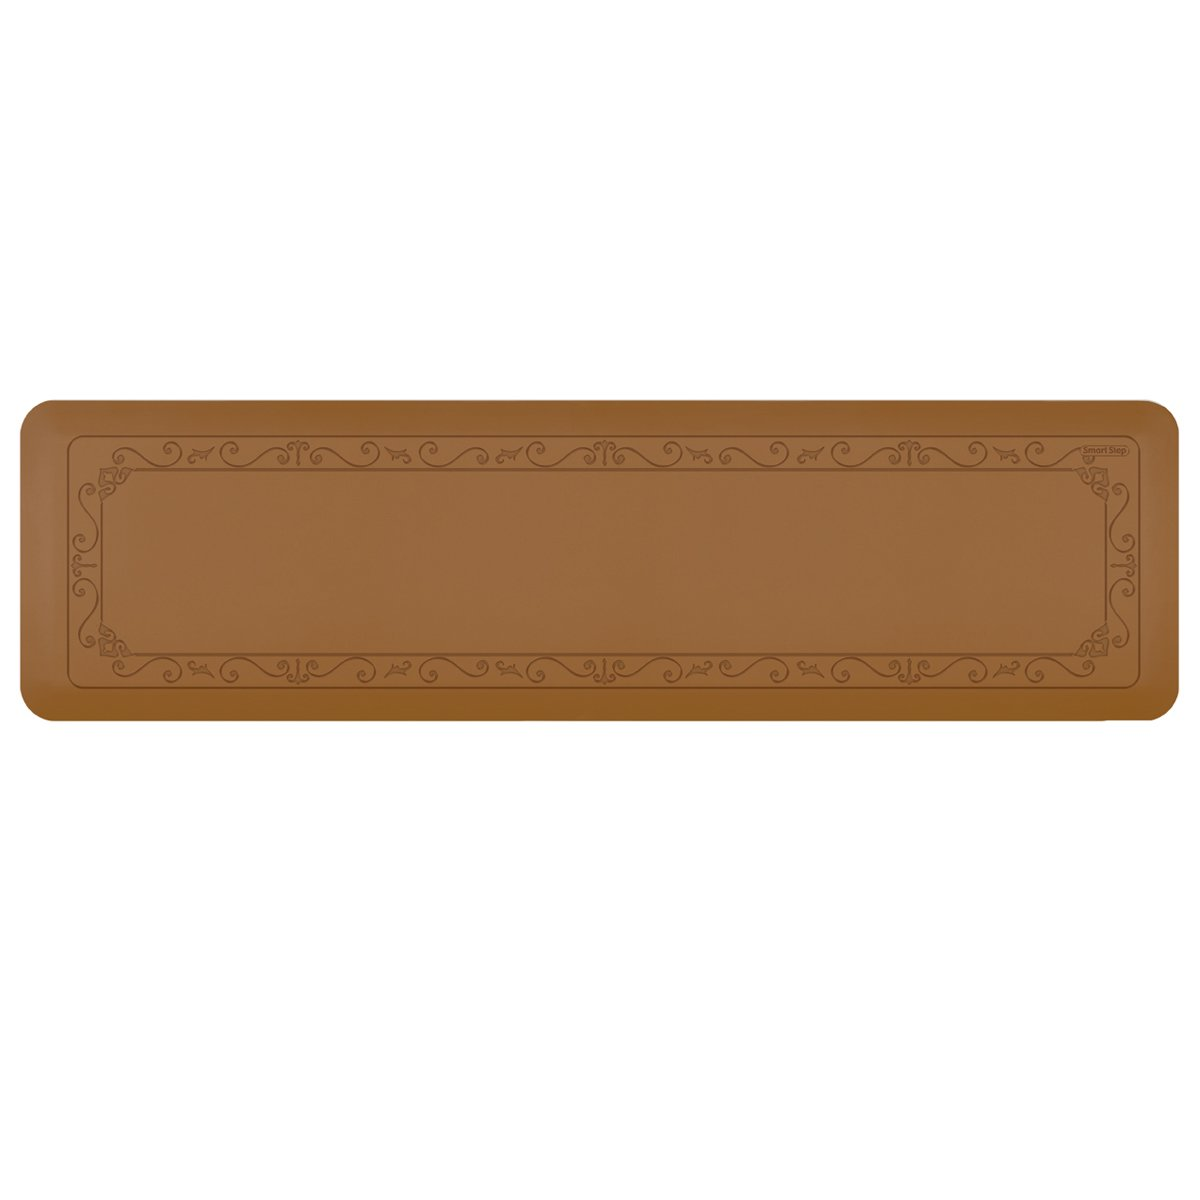 Smart Step Home Collection Fleur-de-Lys Design Mat, 72-Inch by 20-Inch, Tan by Smart Step Therapeutic Flooring